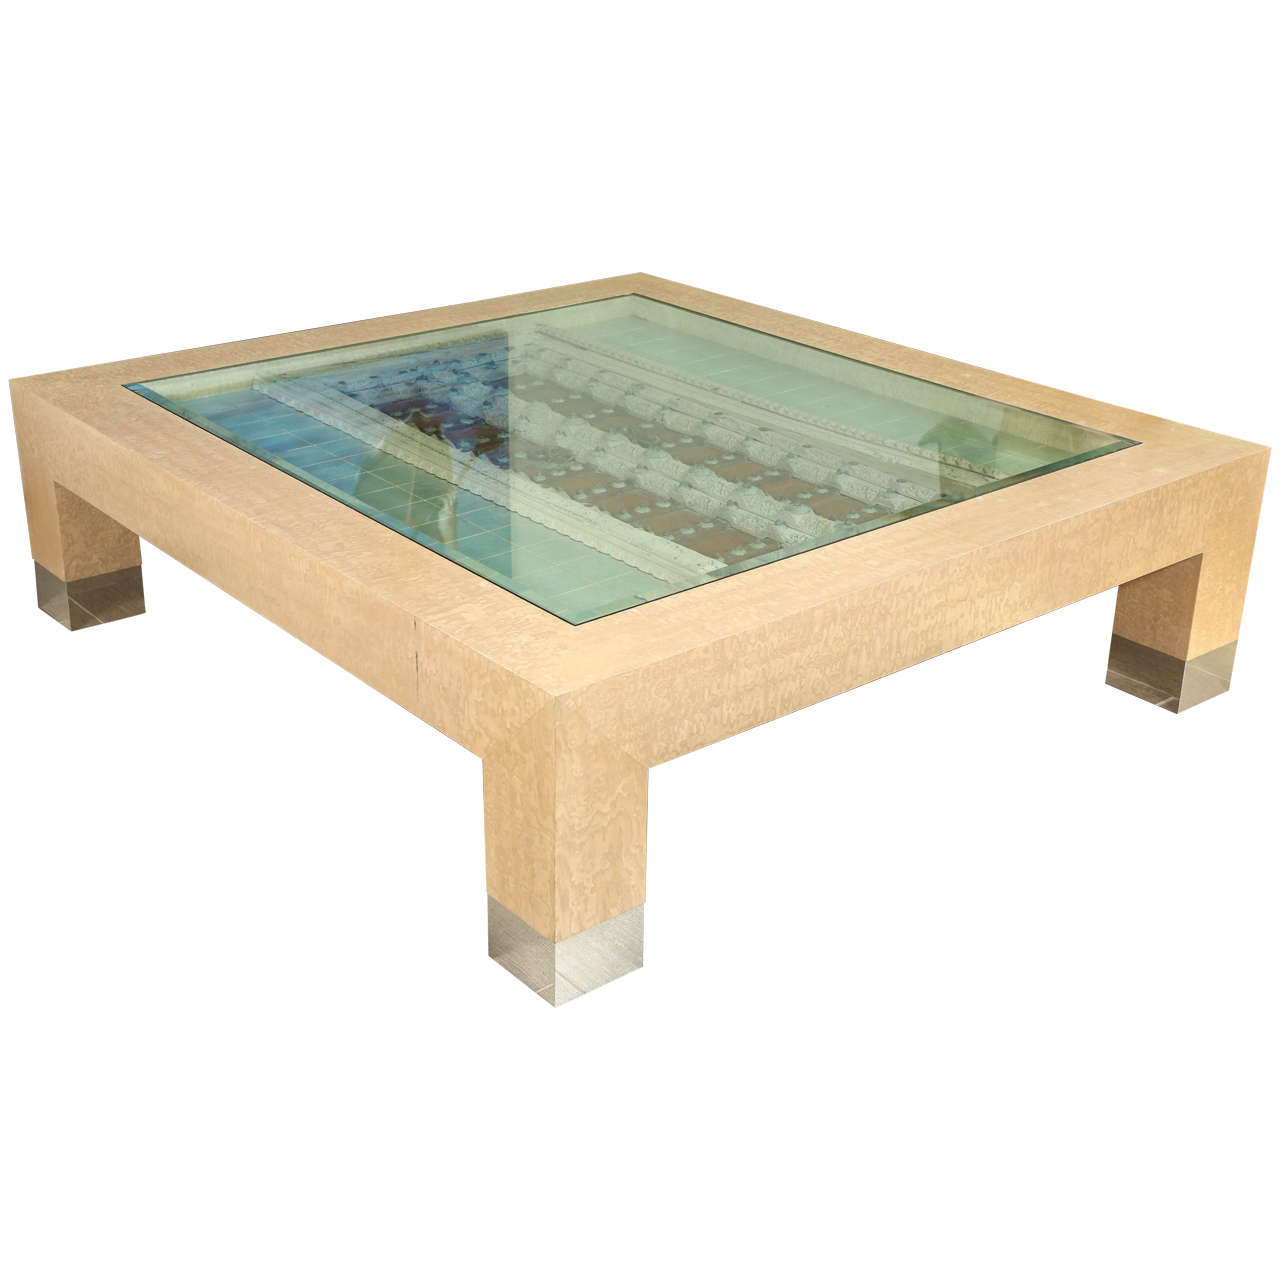 Fabulous Antique Door Coffee Table By Steve Chase At 1stdibs